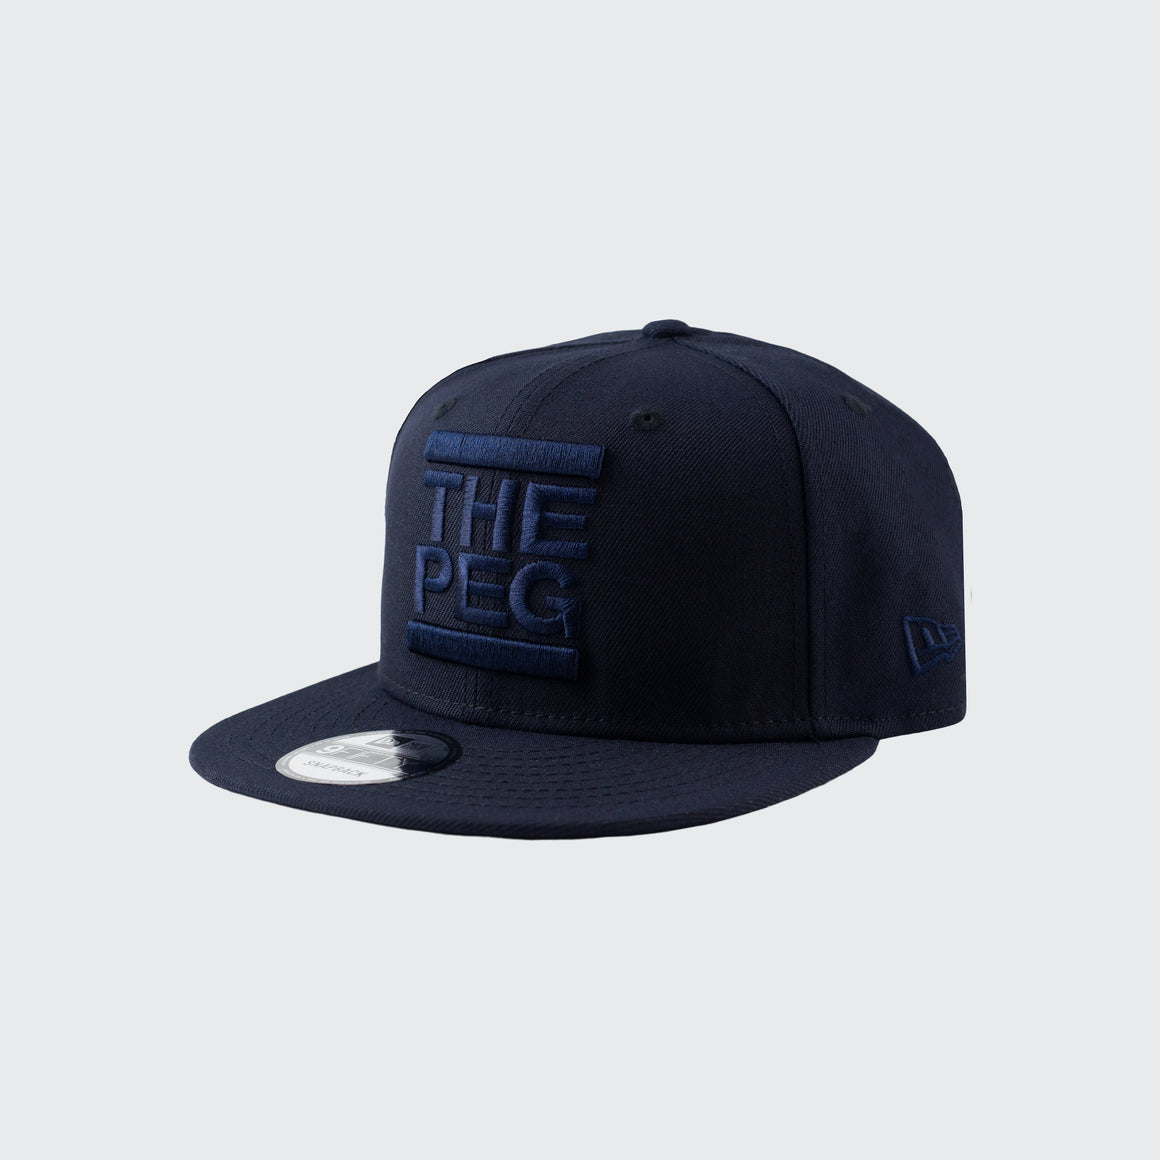 New Era 9FIFTY Classic Snapback (Monochromatic Navy)